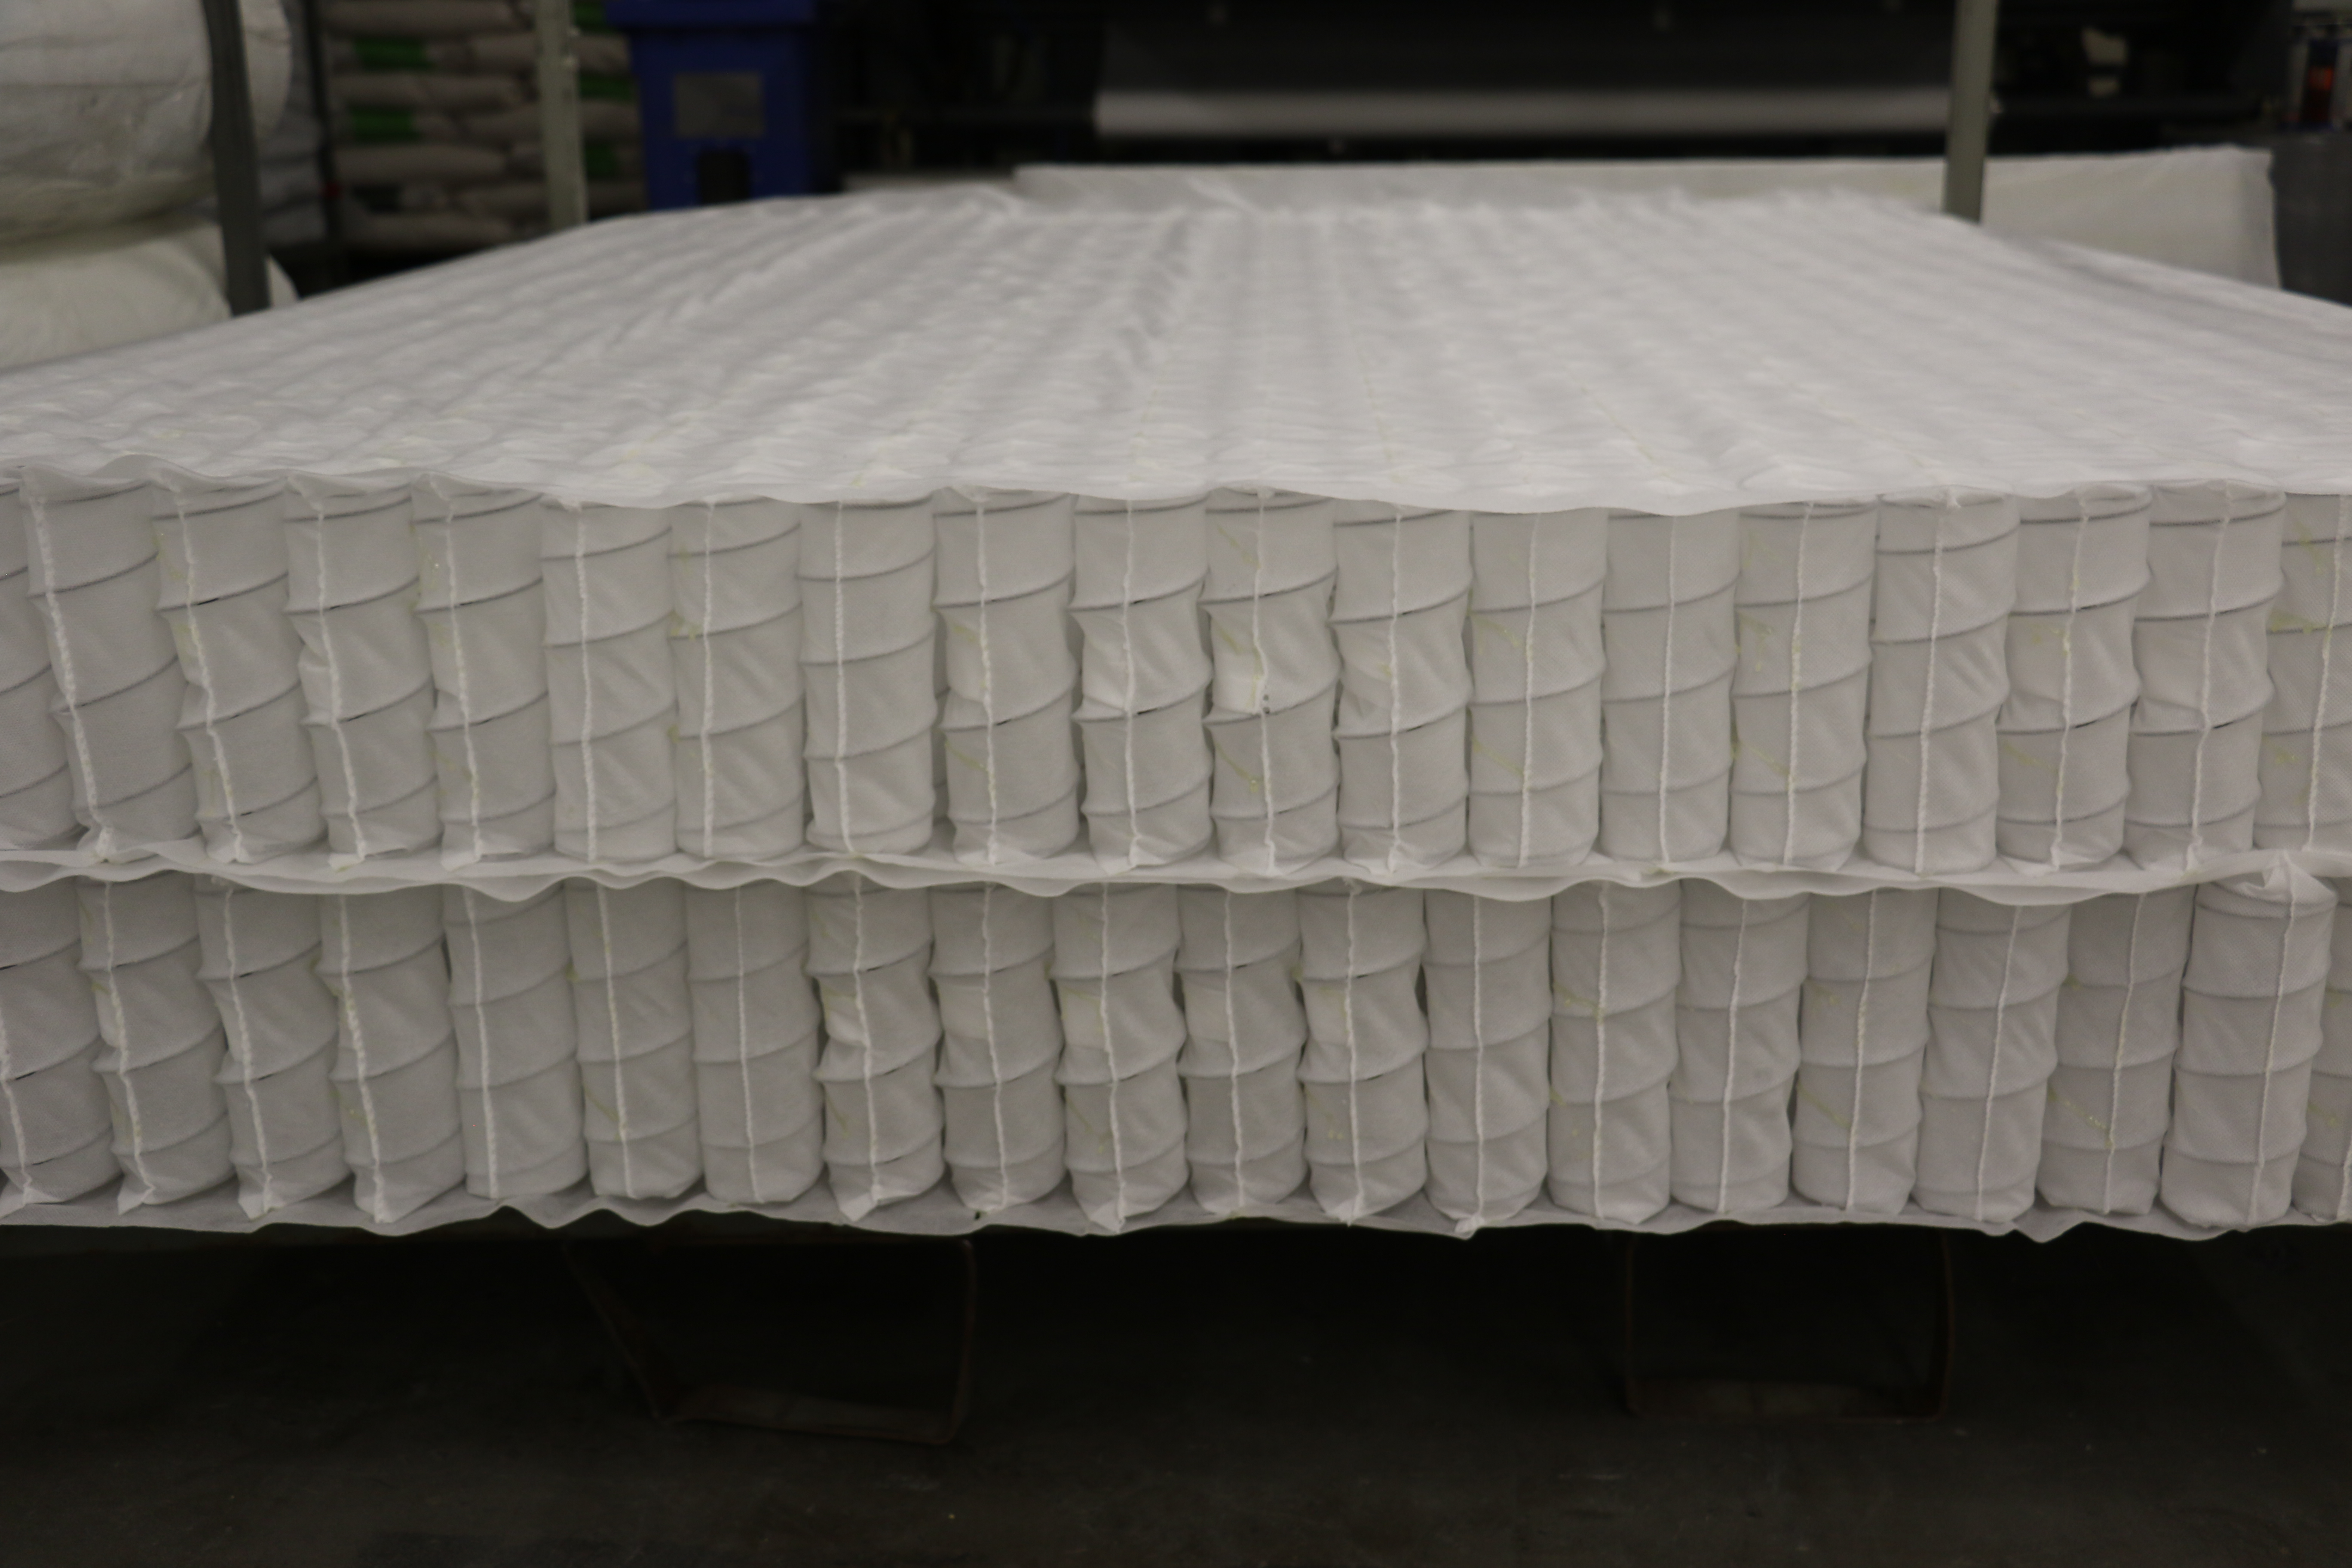 The inner springs of a mattress made at the Deseret Manufacturing facility in Salt Lake City, Utah.